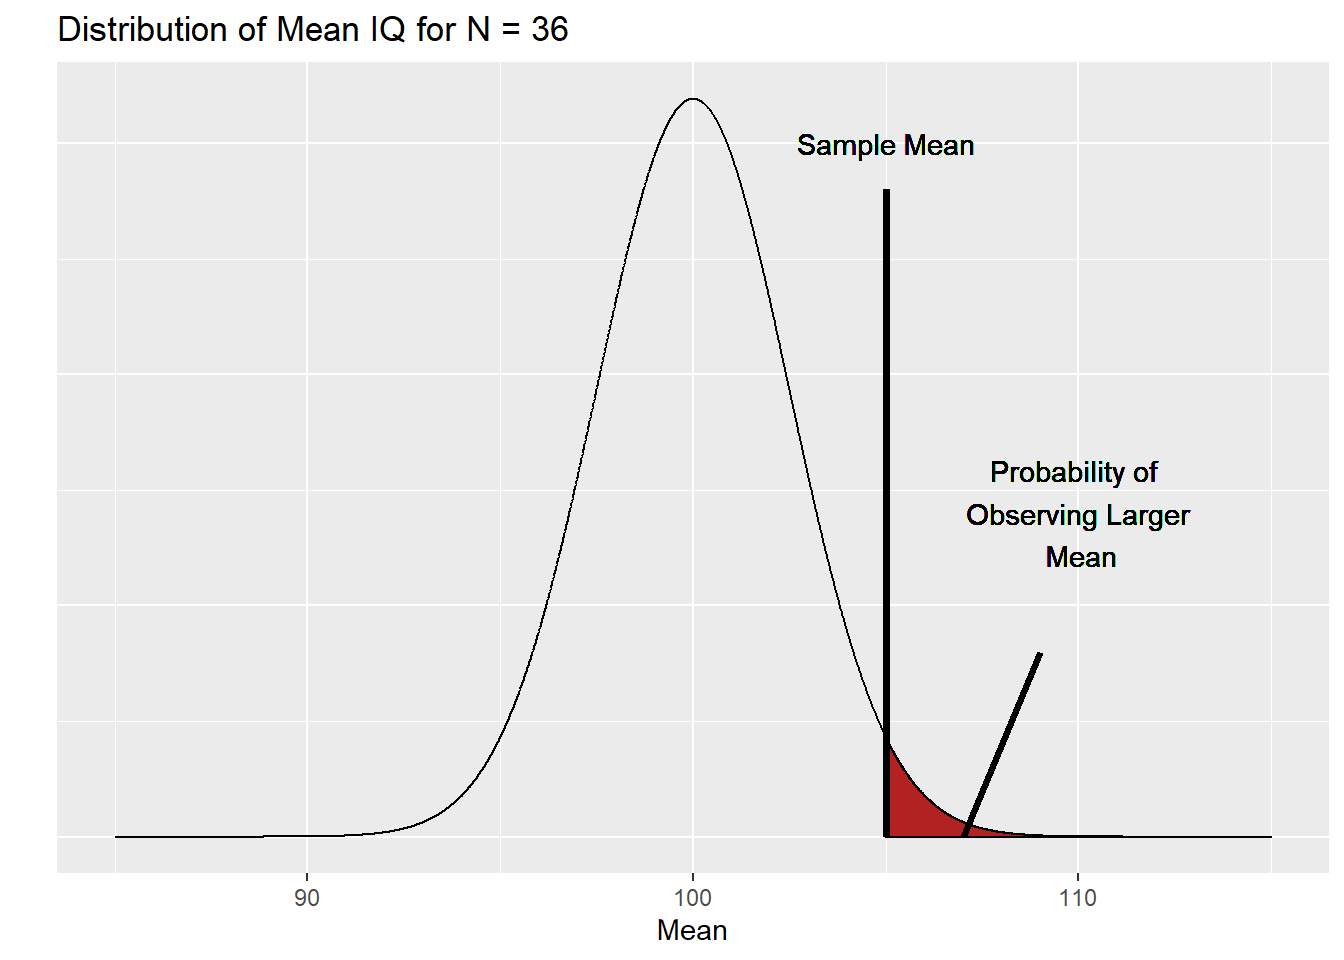 central limit theorem, normal density plot, distribution of mean IQ, critical region